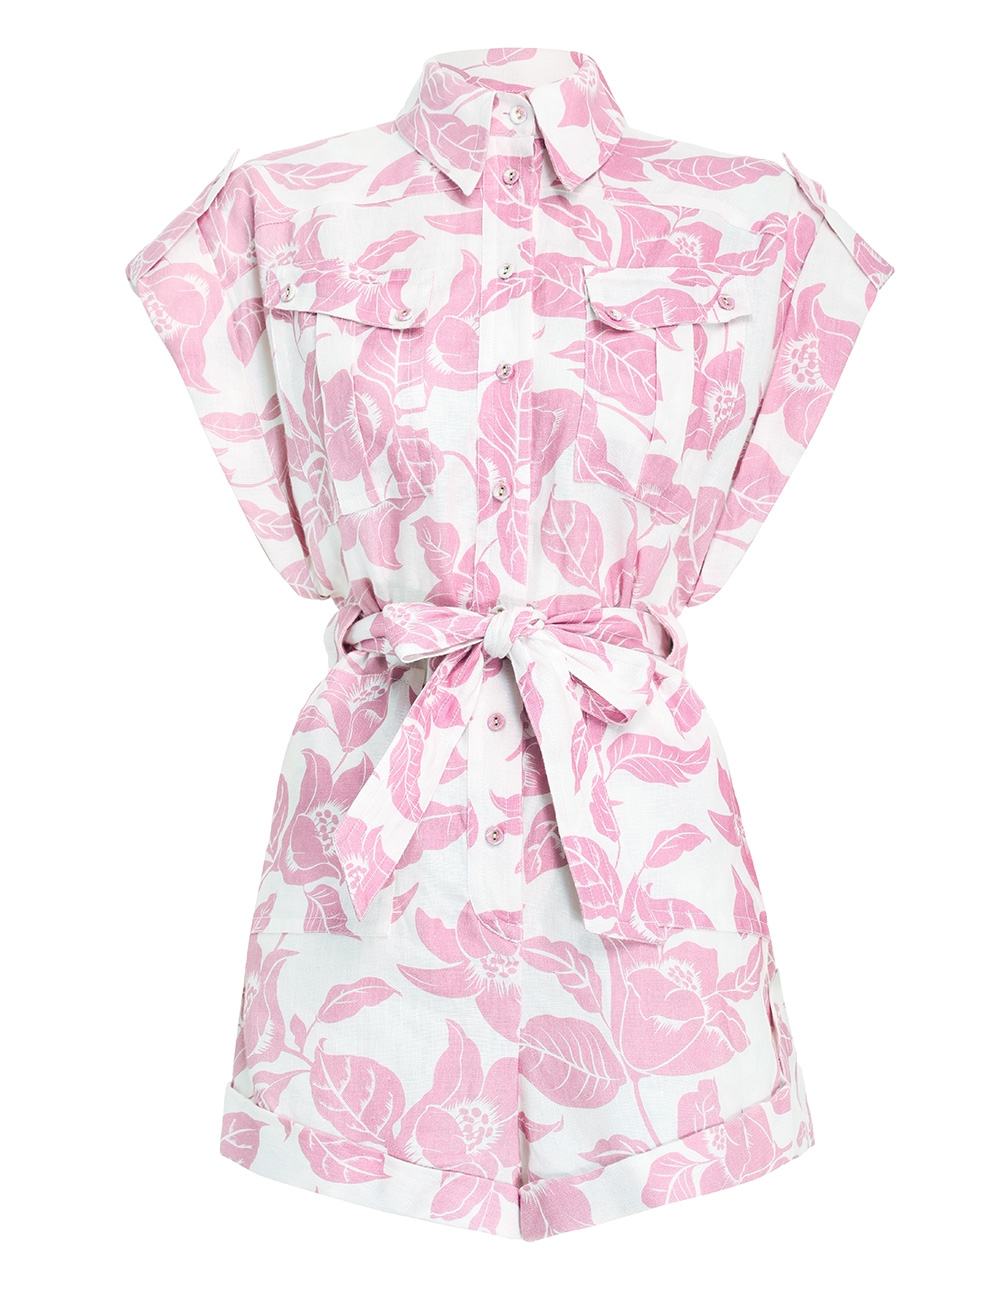 Bells Cuffed Playsuit